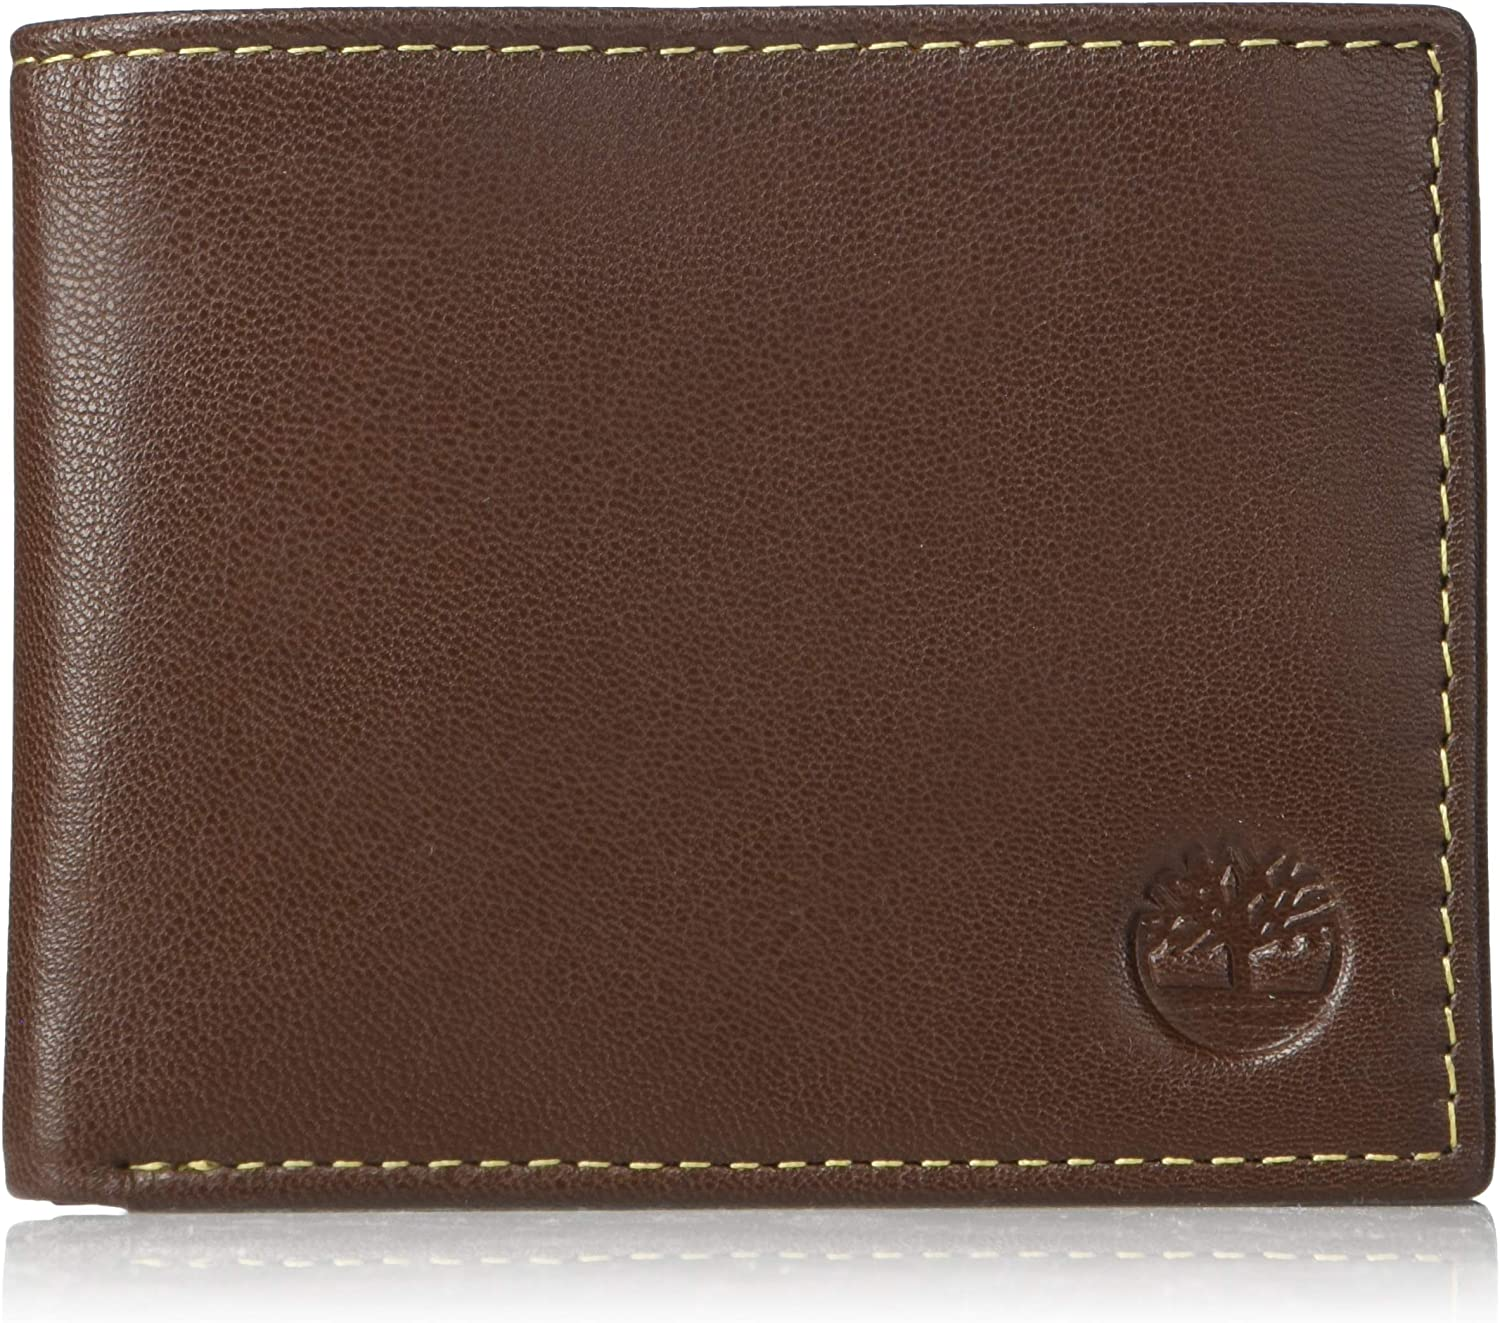 Timberland Men's Leather Passcase Wallet Brown